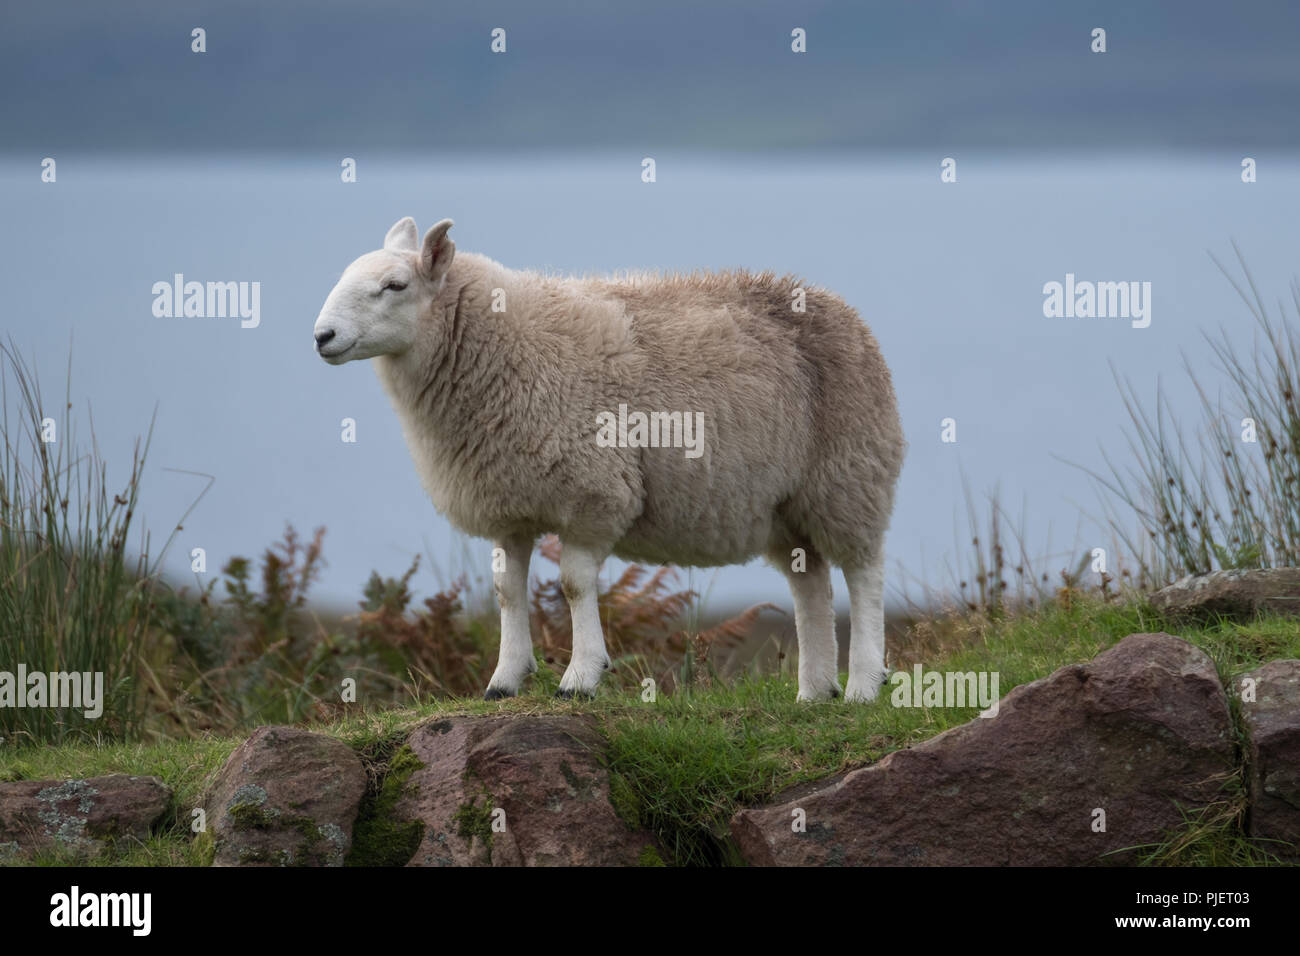 Lone sheep stands on a rocky outcrop in the countryside of the Scottish Highlands, north of Ullapool, in north west Scotland. - Stock Image